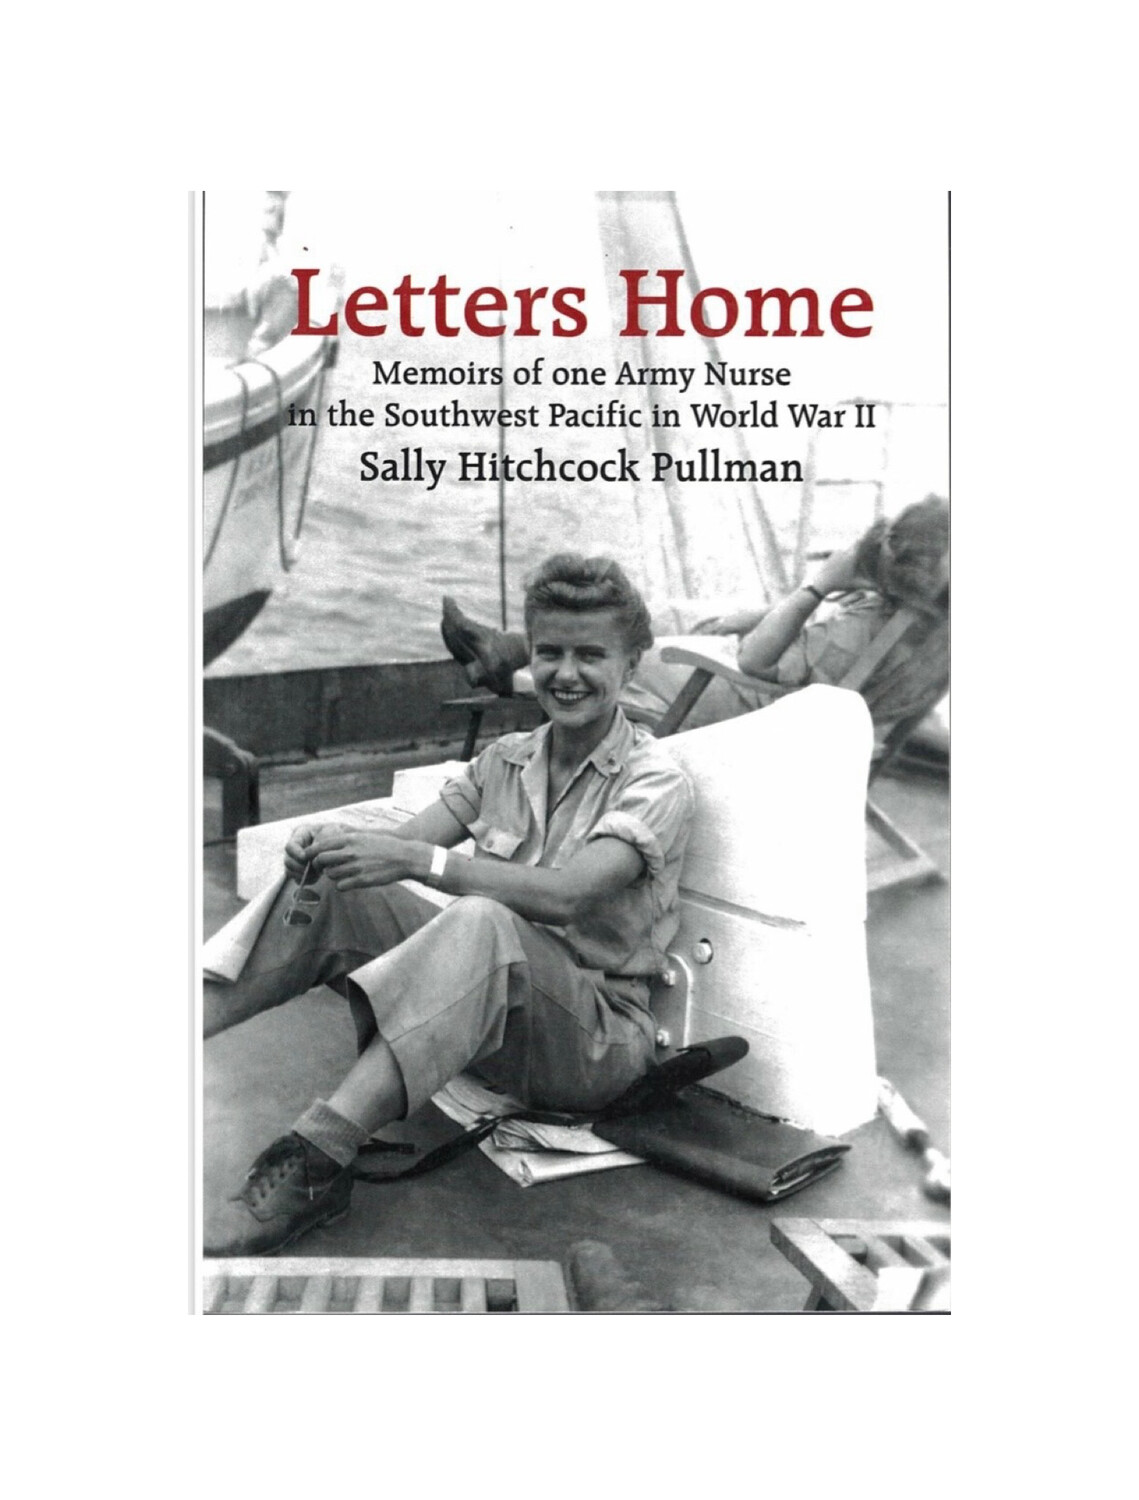 Letters Home By Sally Hitchcock Pullman